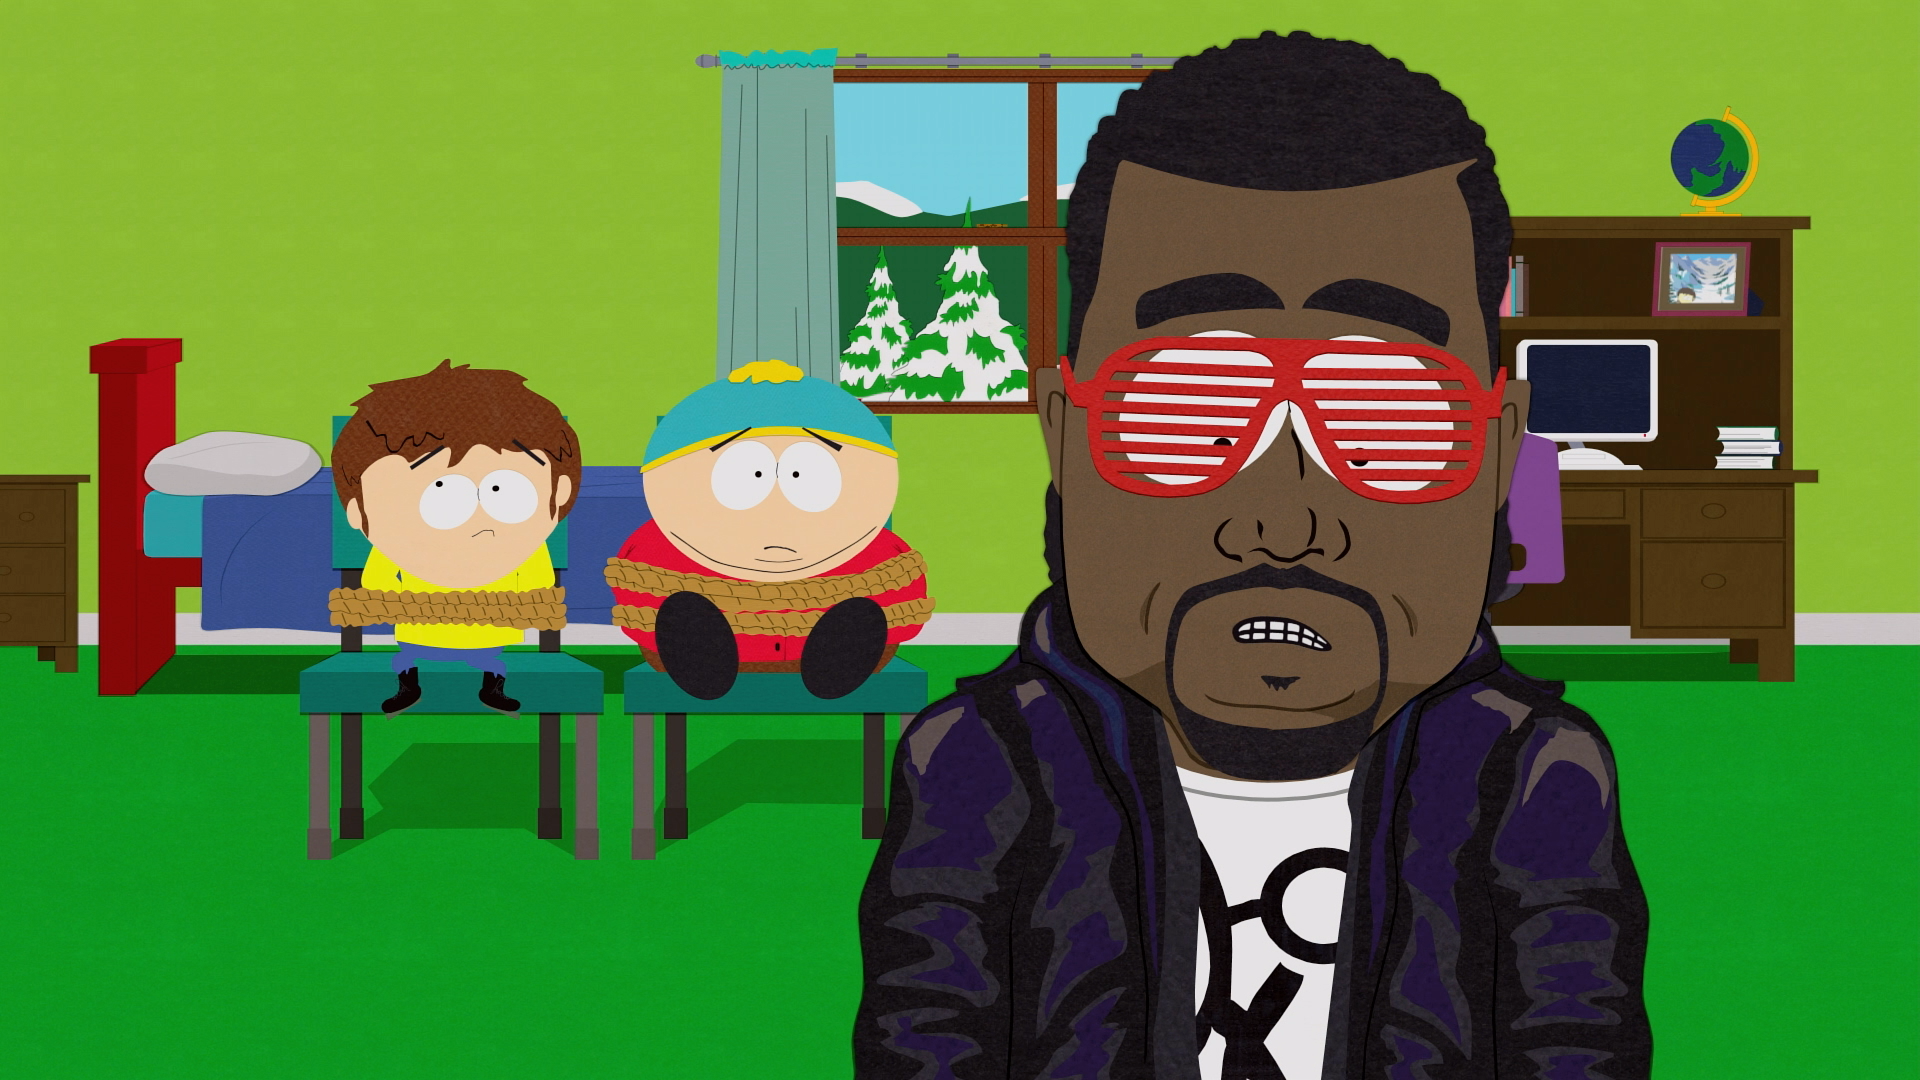 South Park Wallpapers HD kanye west